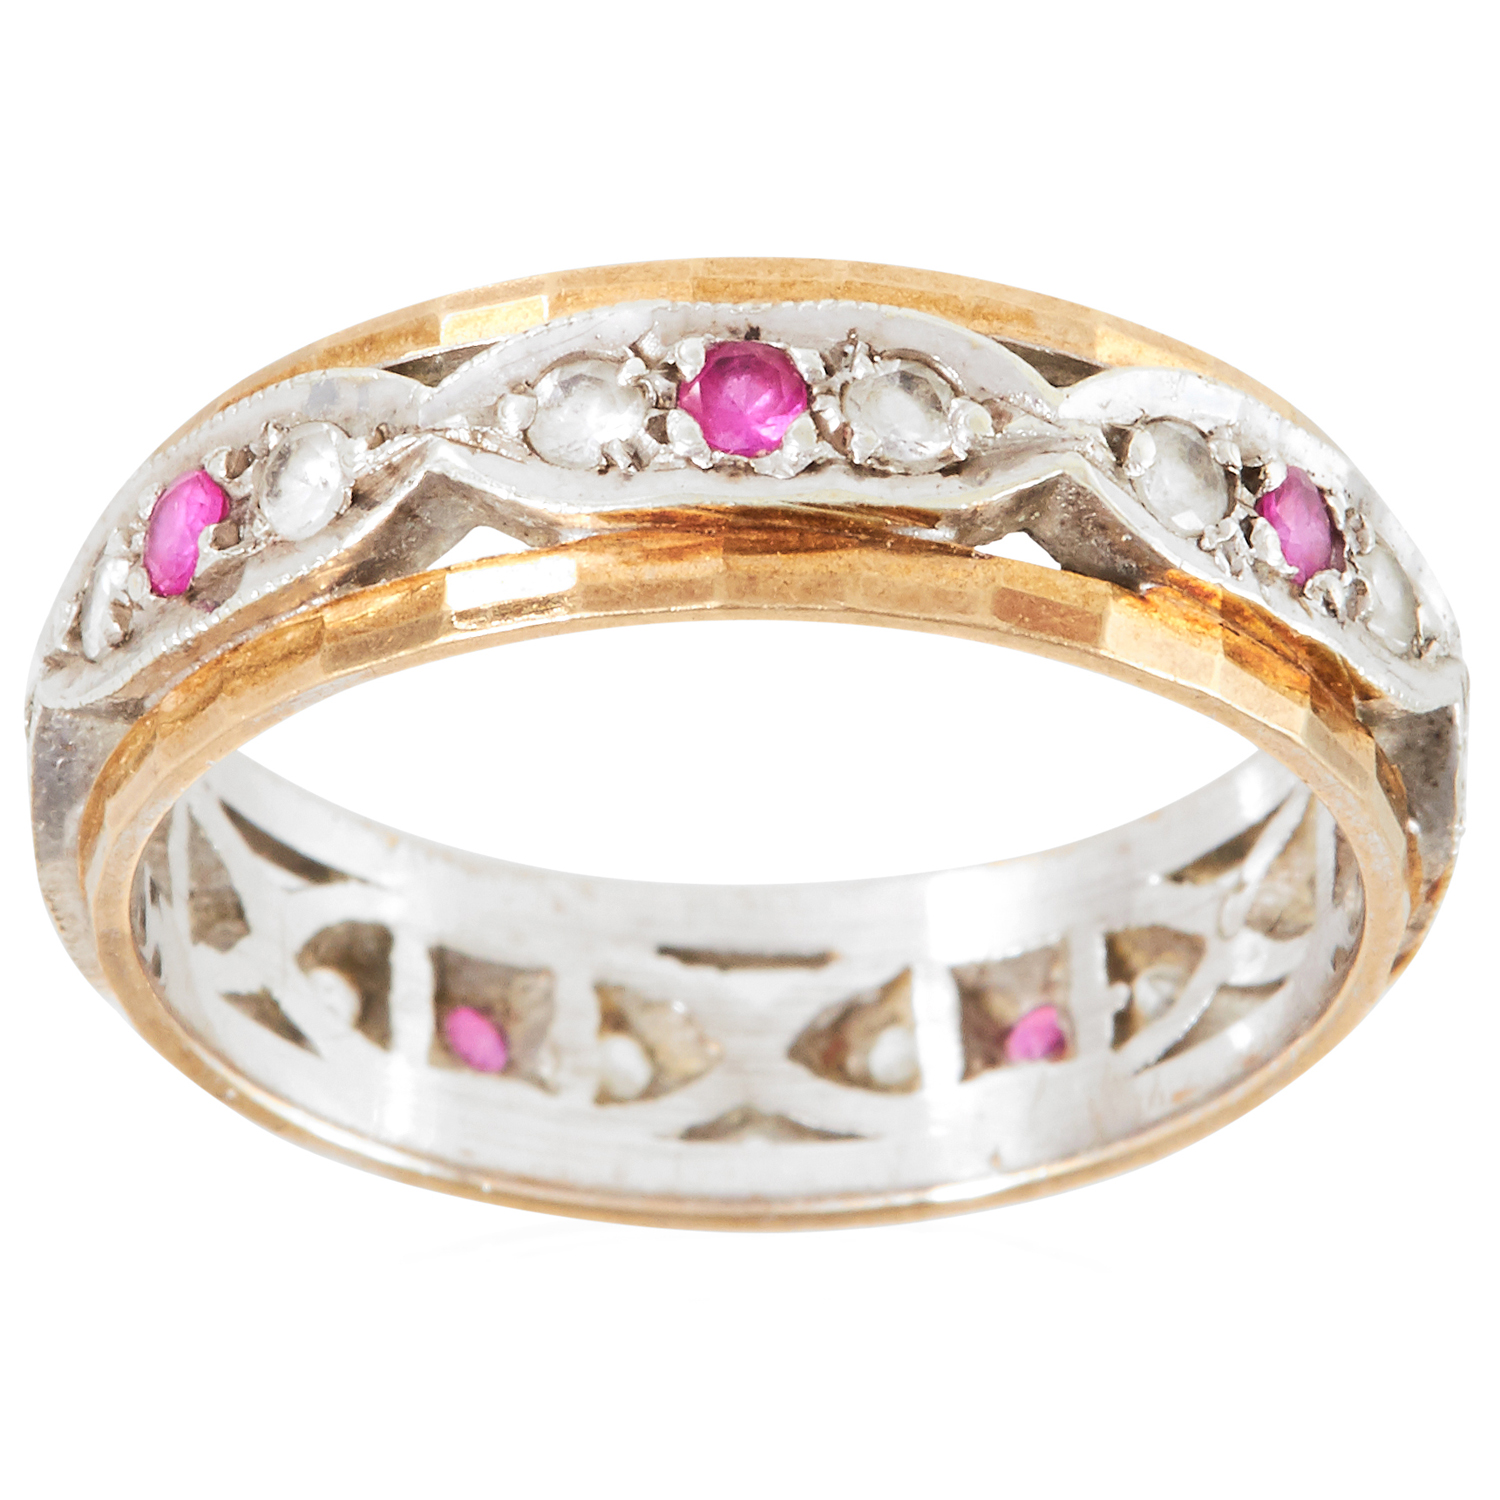 A RUBY AND DIAMOND ETERNITY RING in yellow gold, set with alternating round cut diamonds and rubies,